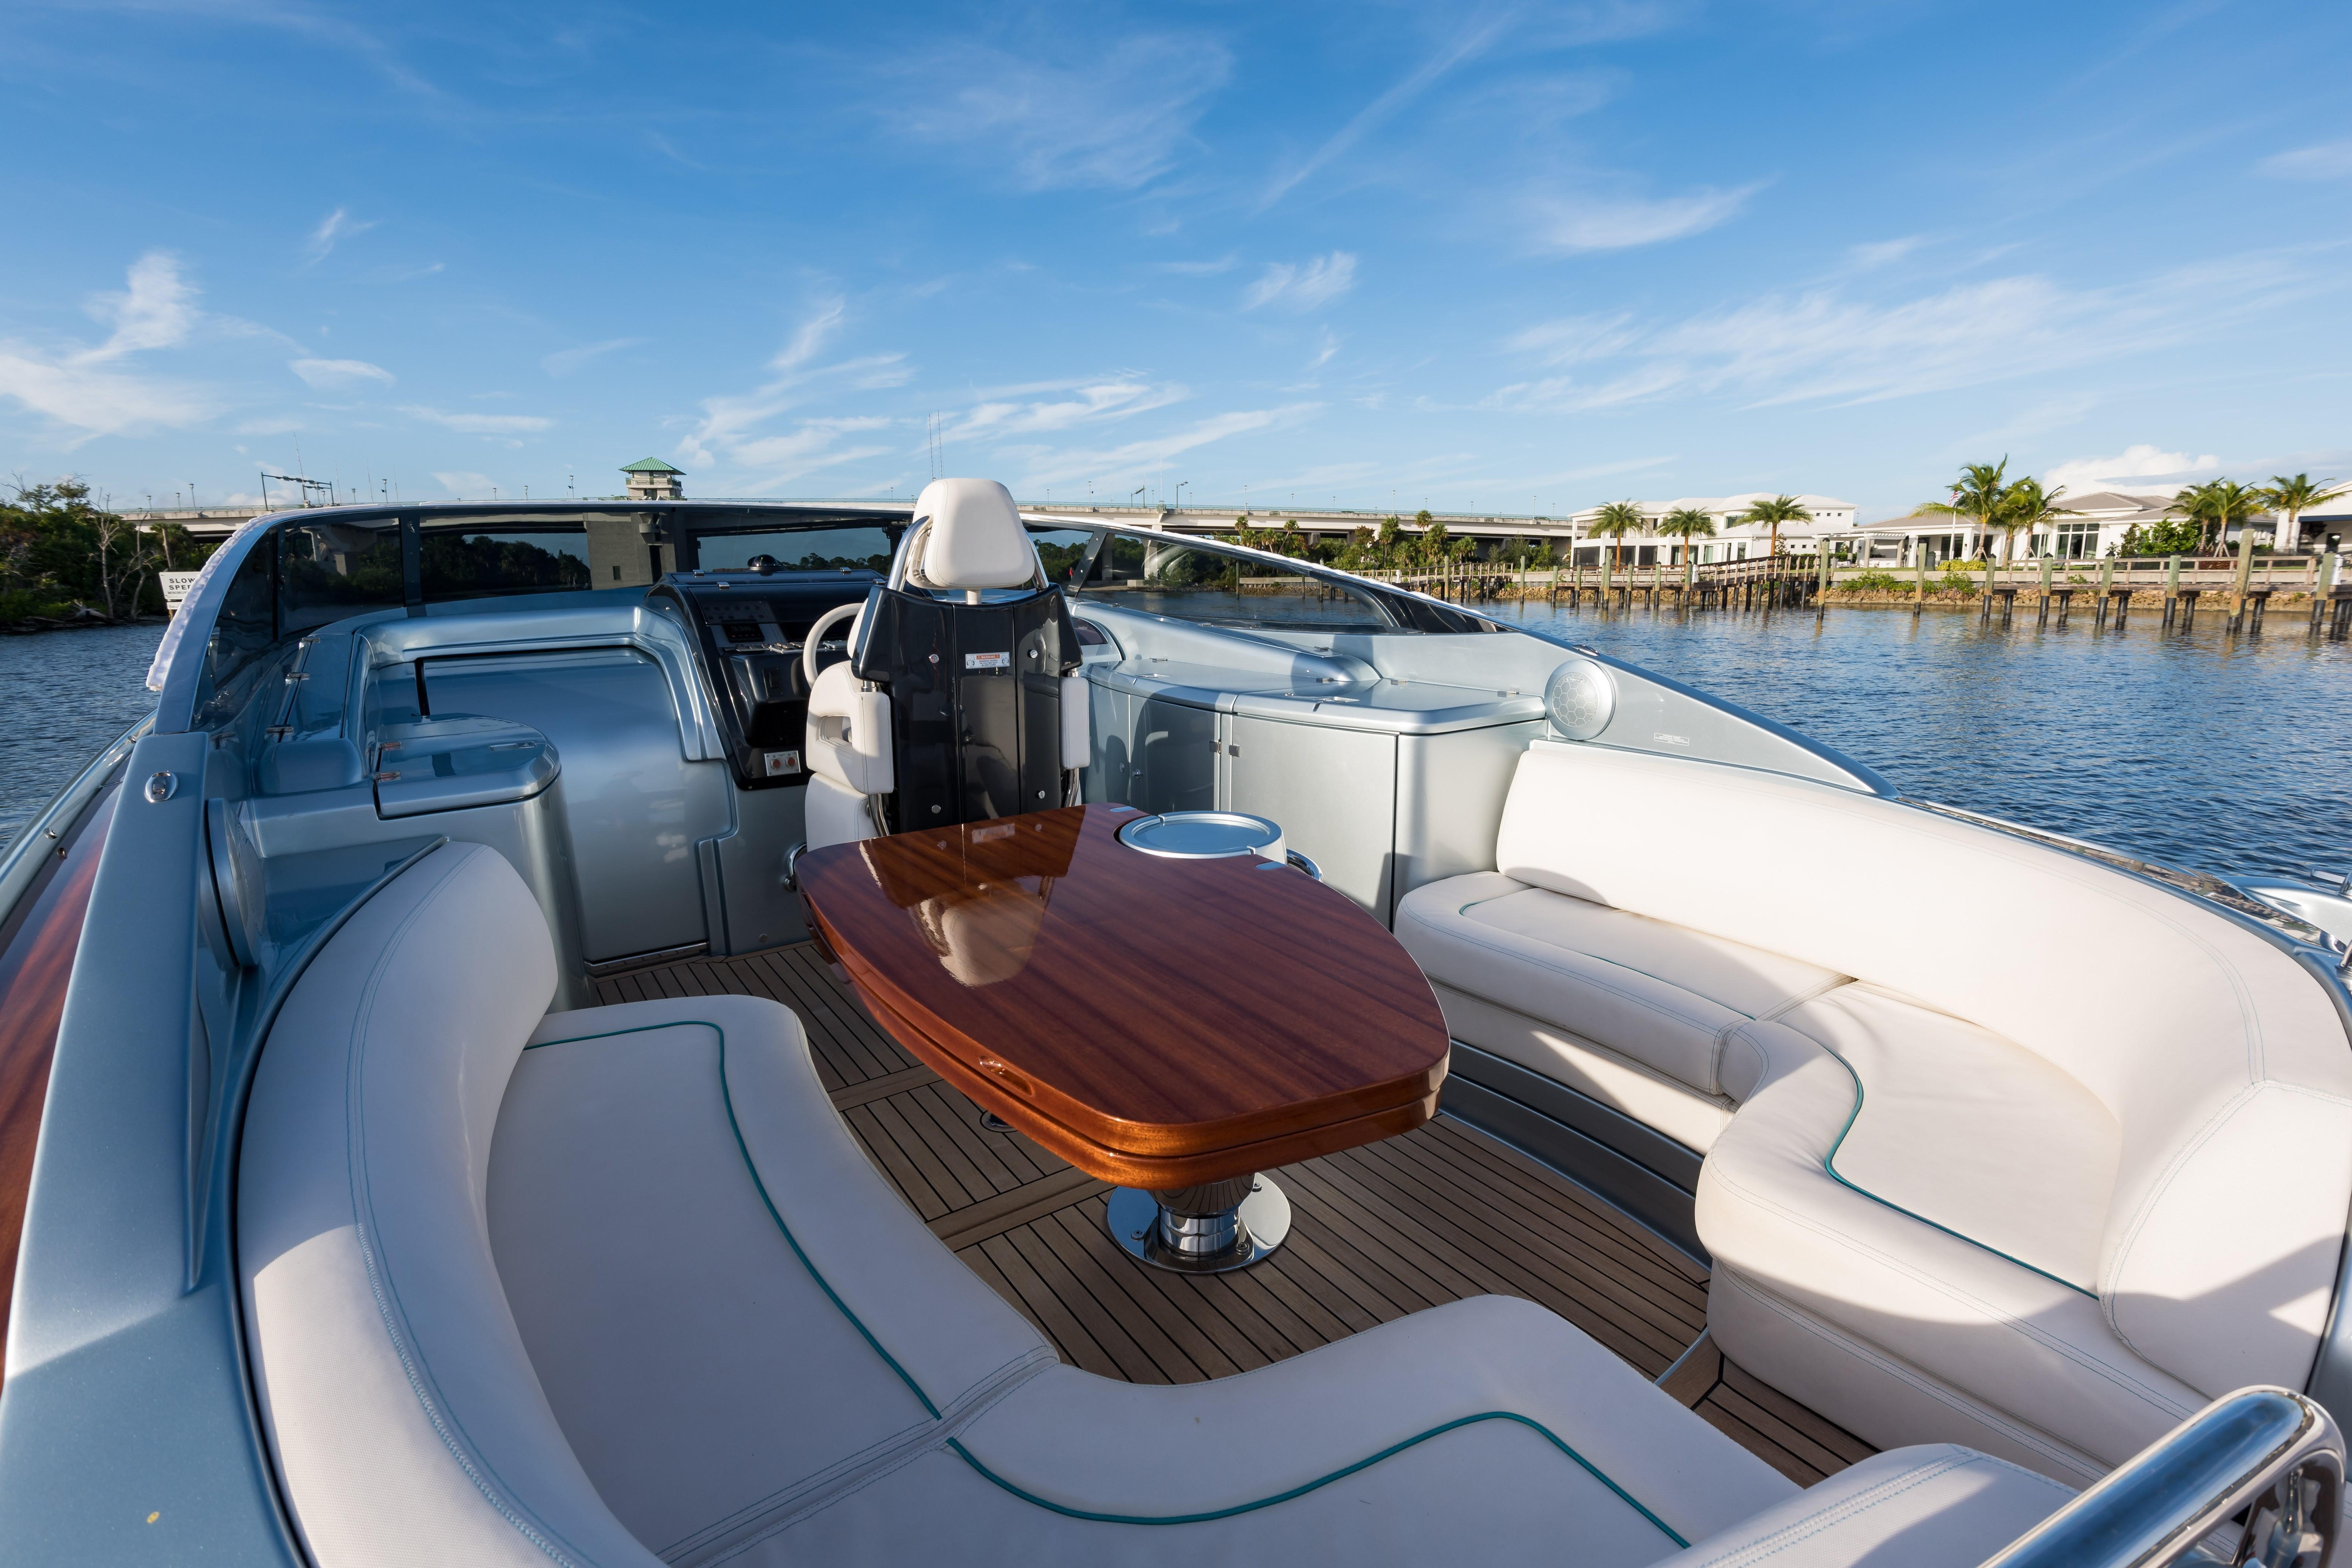 2014 44' Riva Helm Seating